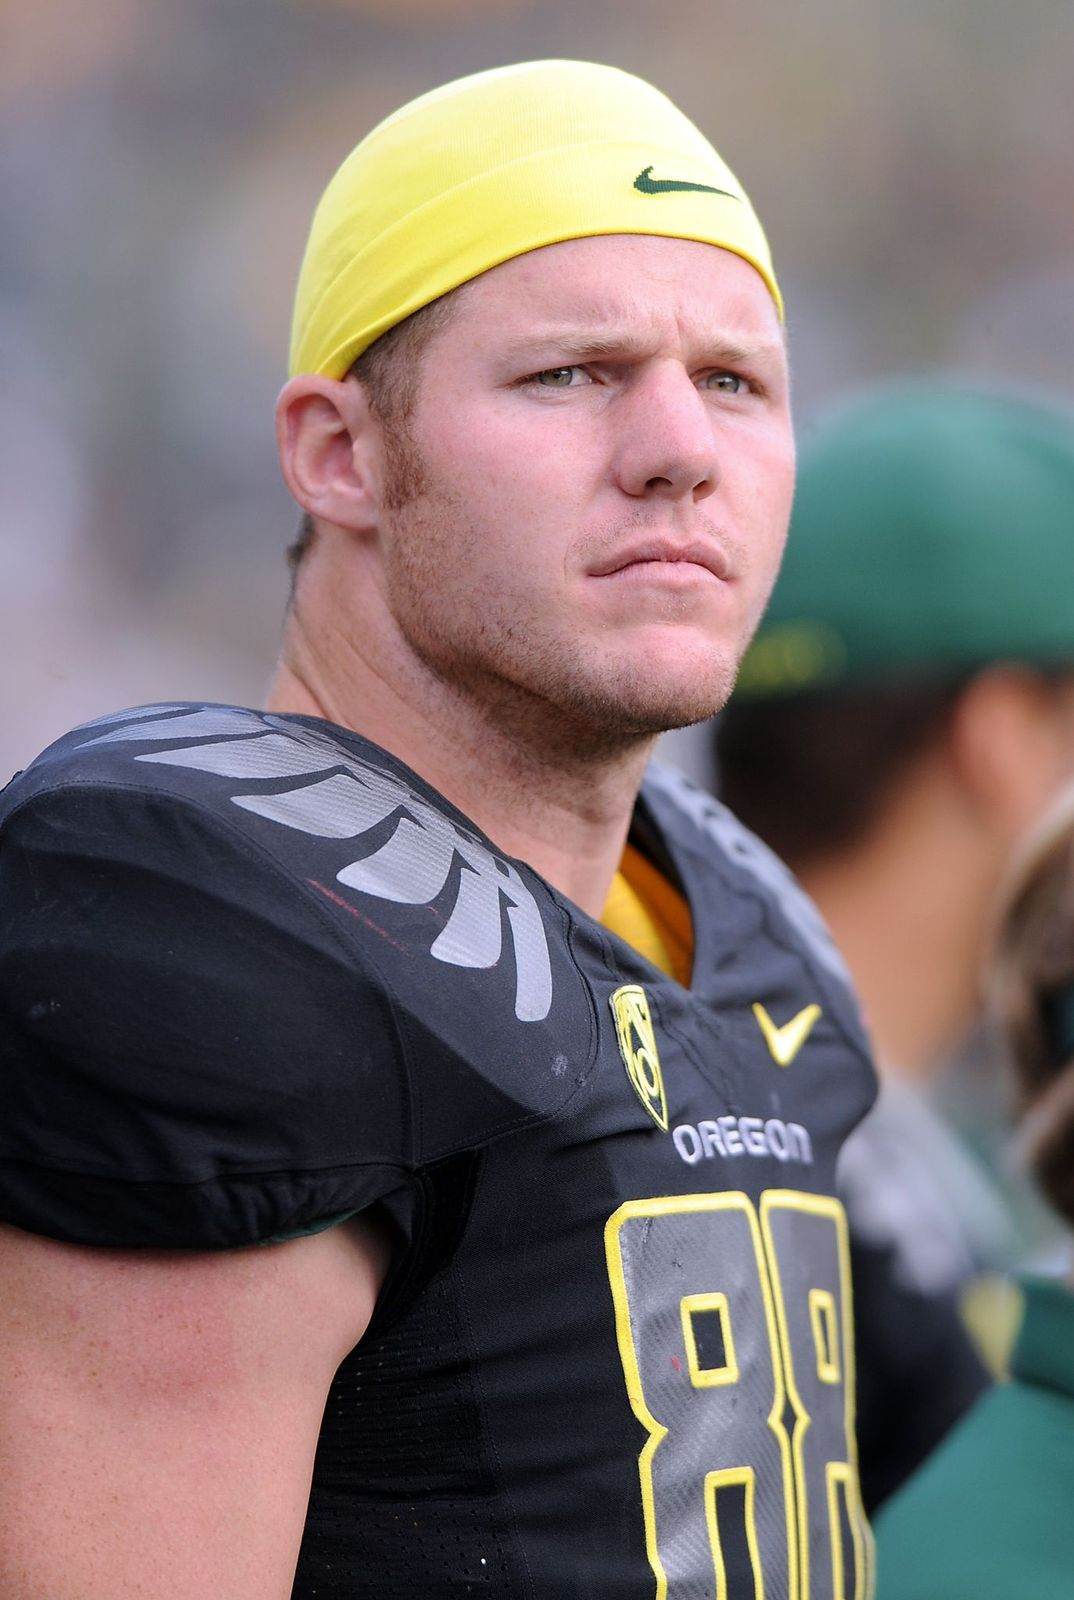 Brandon Bair #88 of the Oregon Ducks watches the action from the sidelines in the third quarter of the game against the New Mexico Lobos on September 4, 2010   Photo: Getty Images